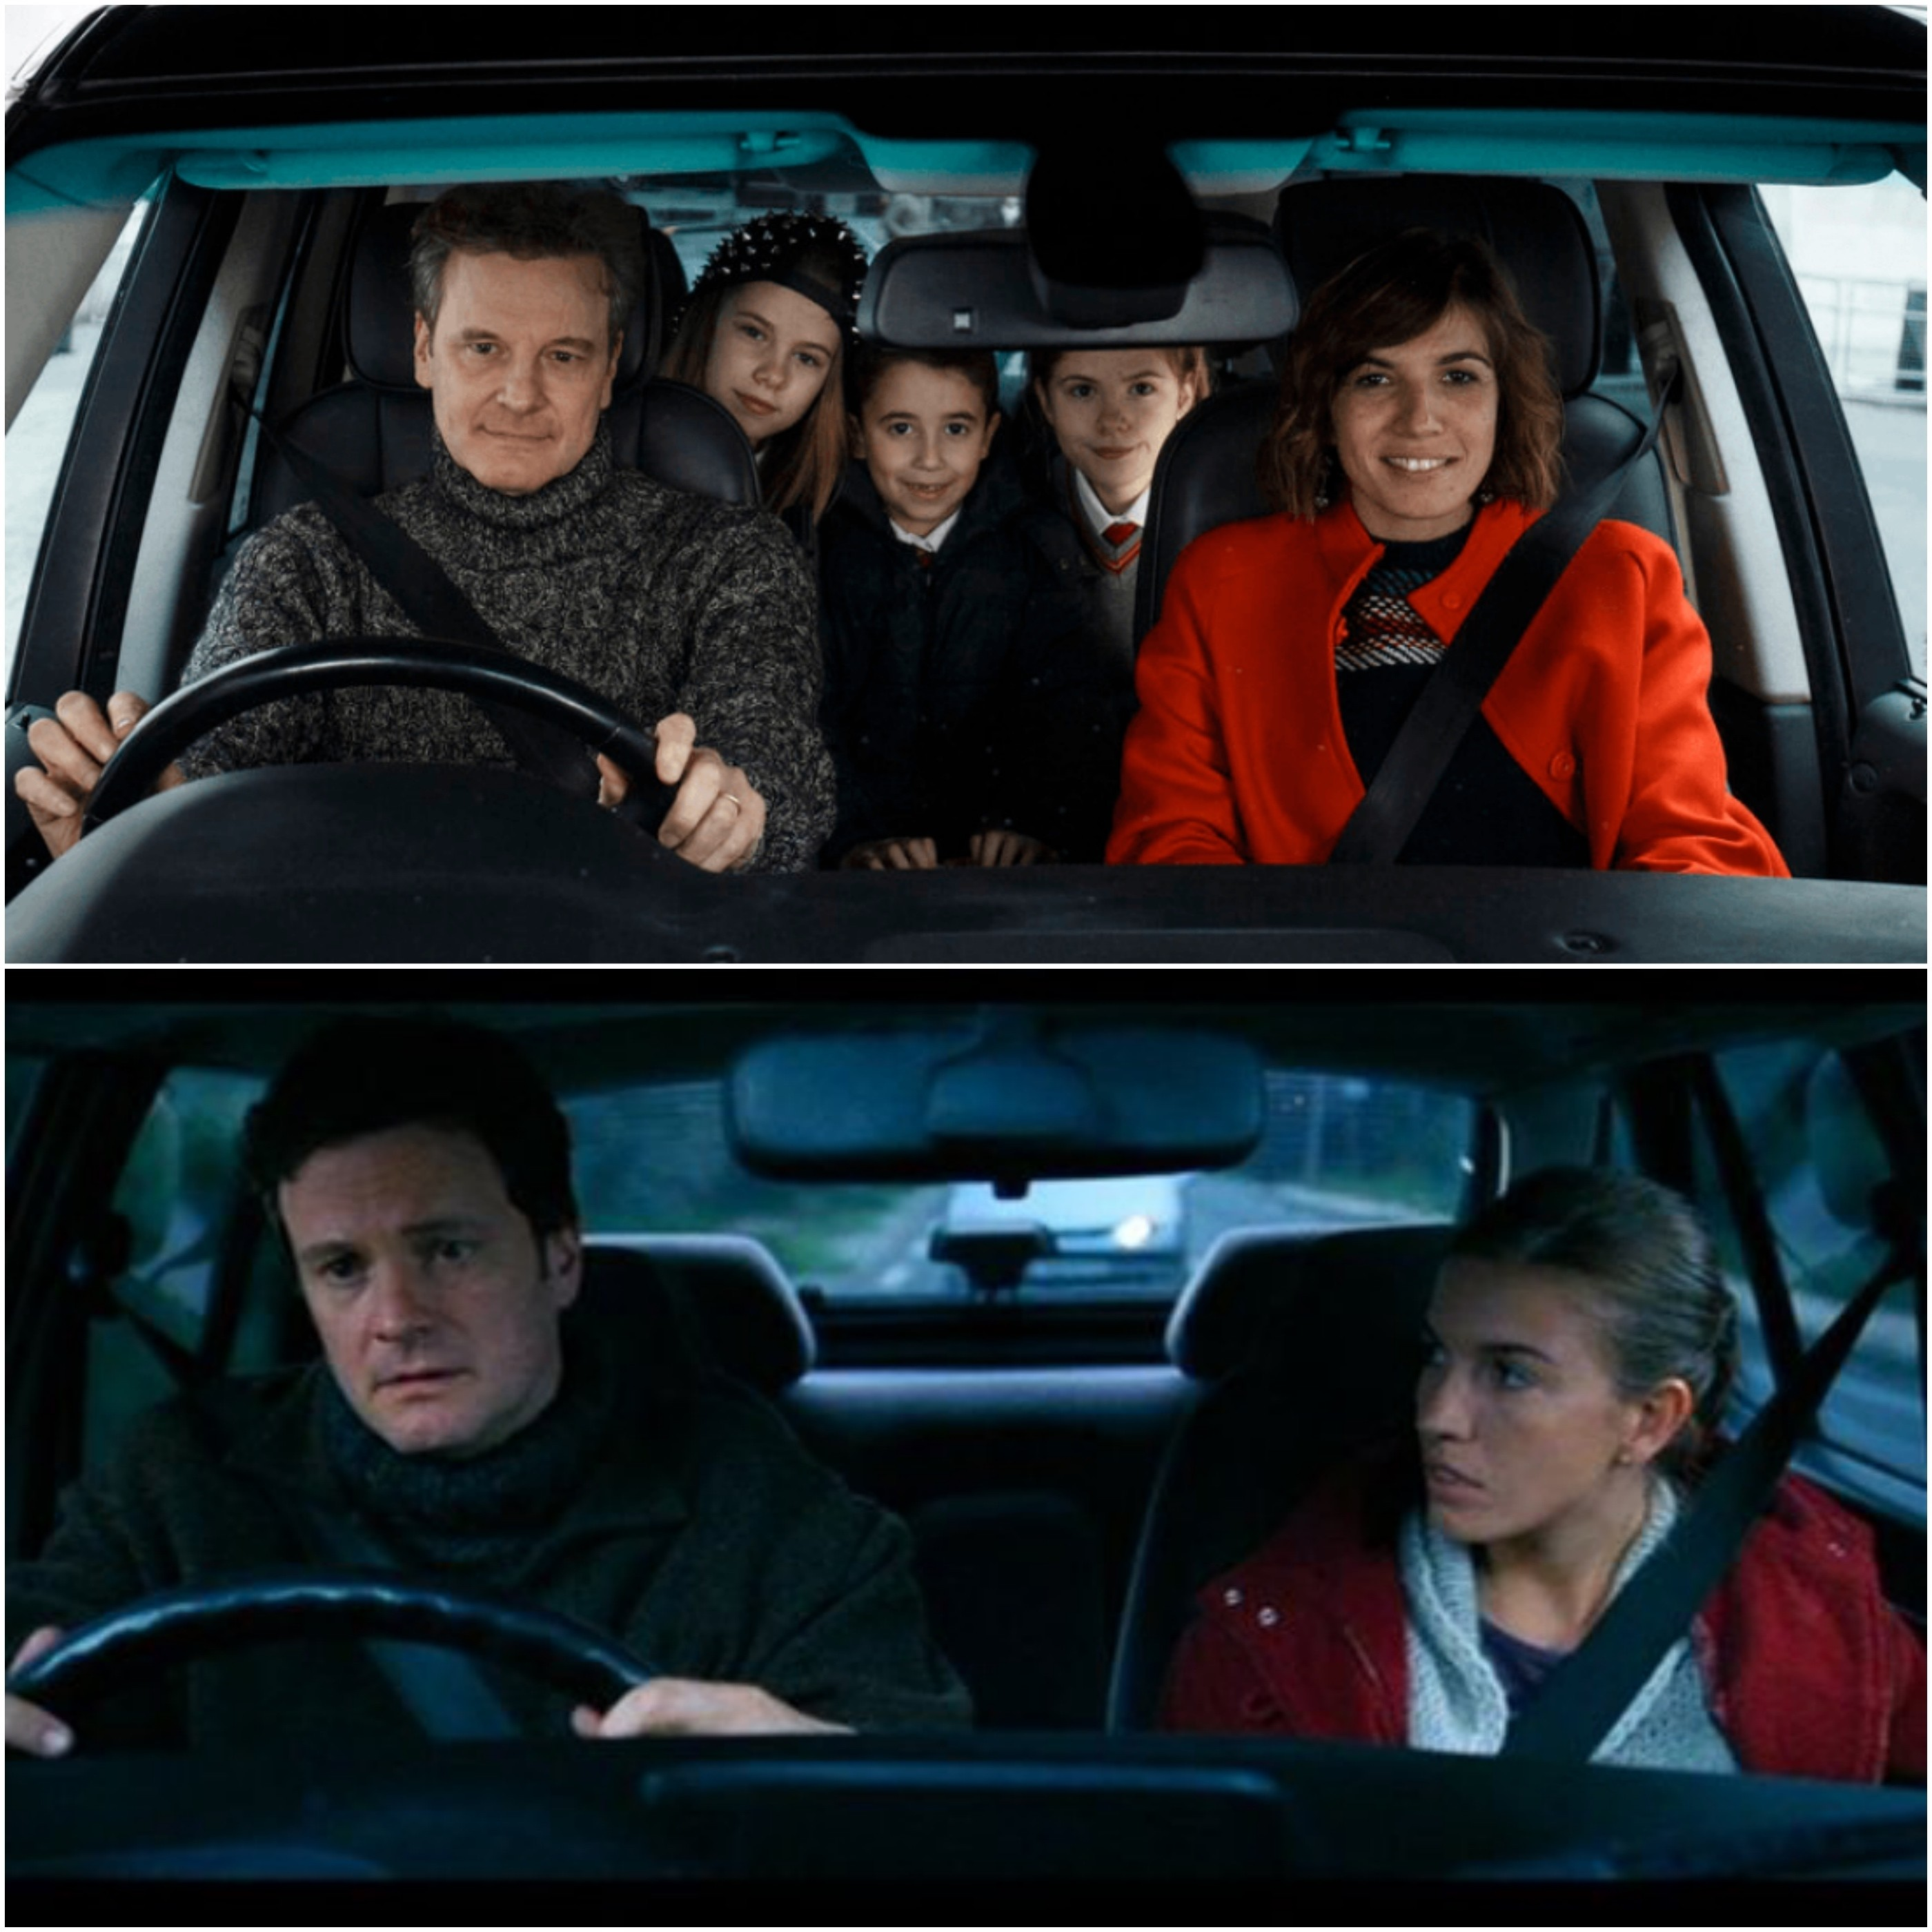 These 5 Biggest Moments from the 'Love Actually' Sequel Are What Dreams Are Made Of